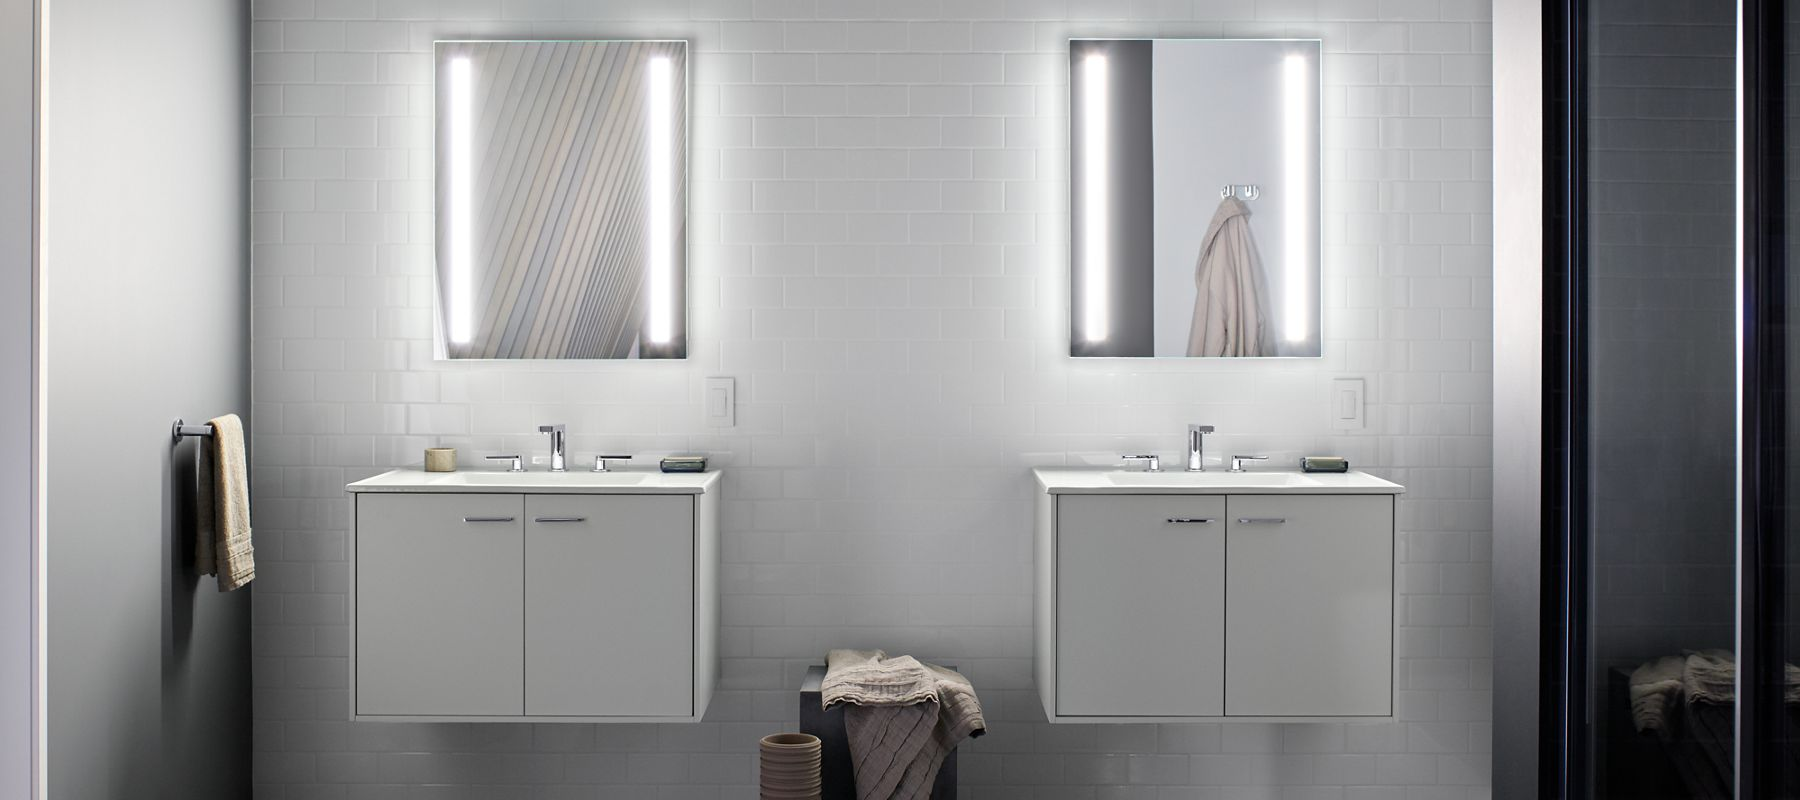 Bathroom Storage And Mirrors bathroom medicine cabinets, other furniture & storage solution | kohler